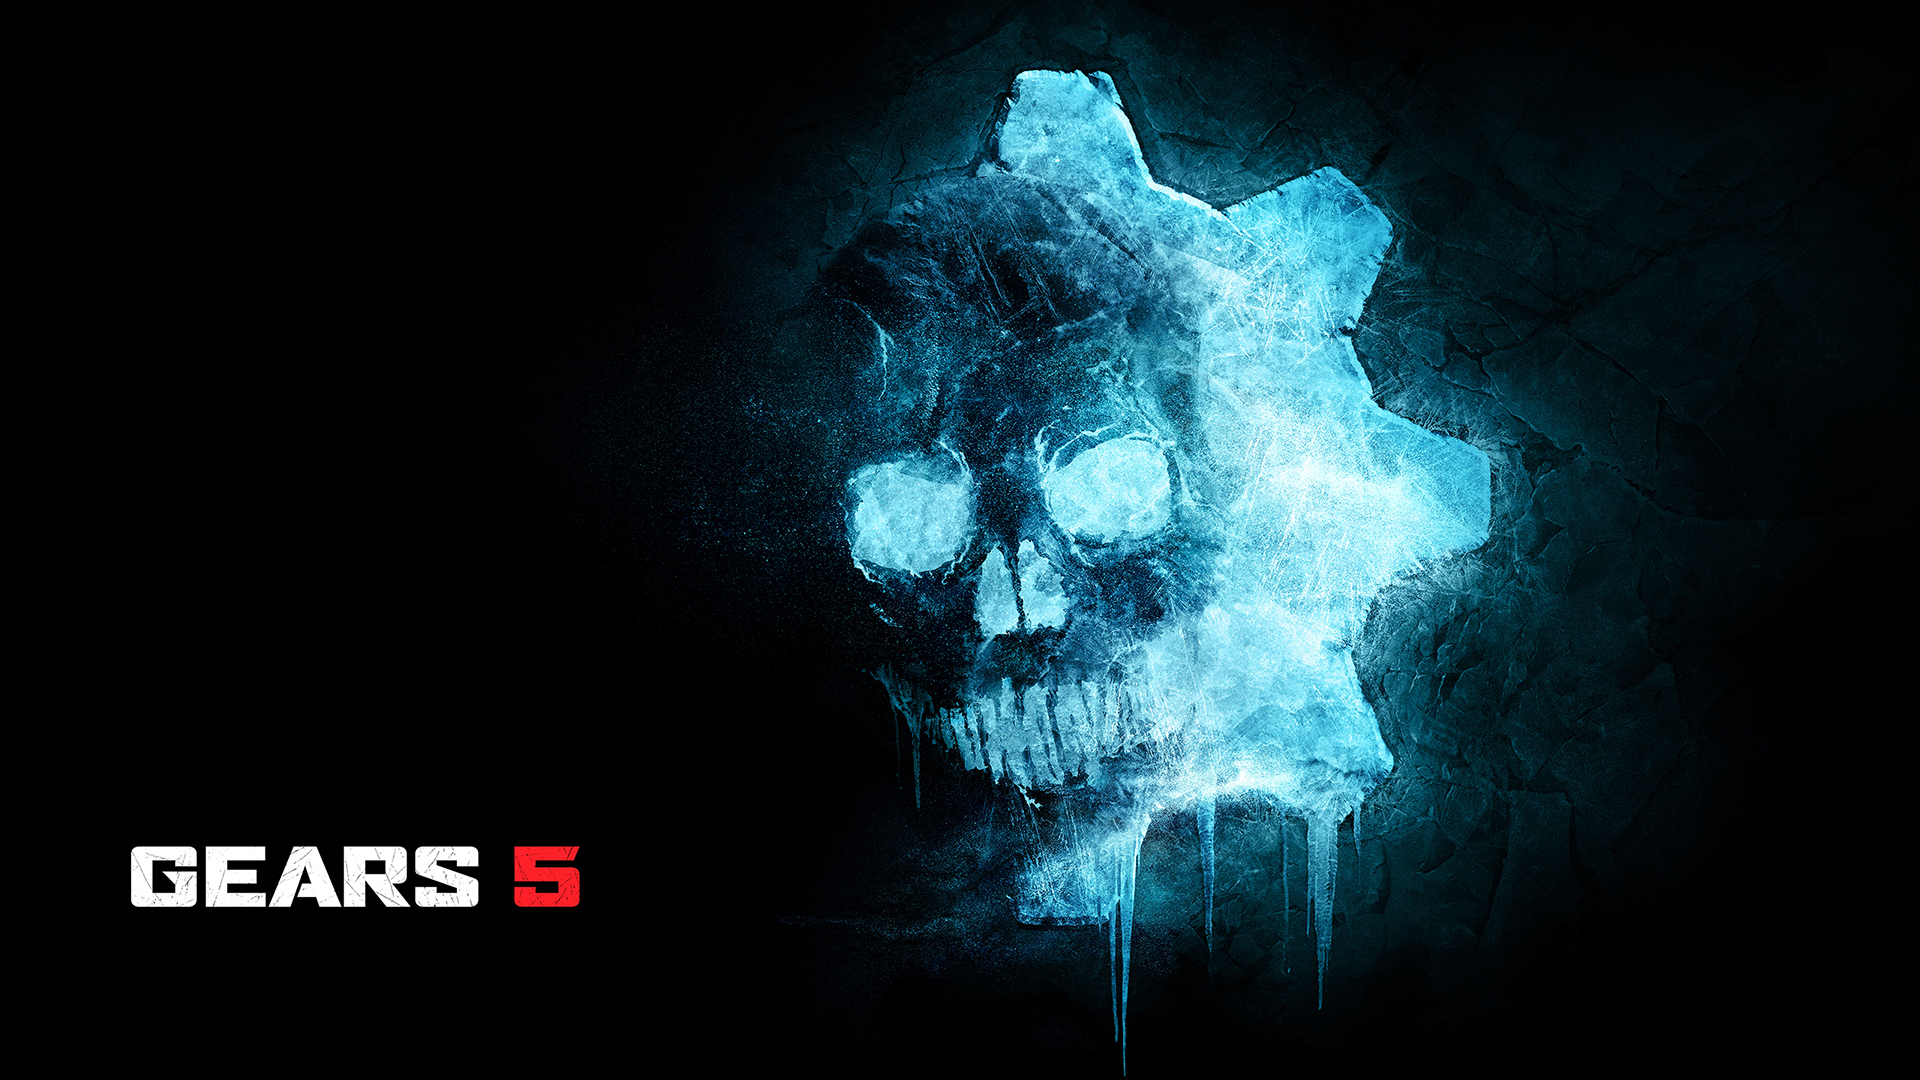 Gears 5 Desktop and Xbox Backgrounds   General Discussion   Gears 1920x1080